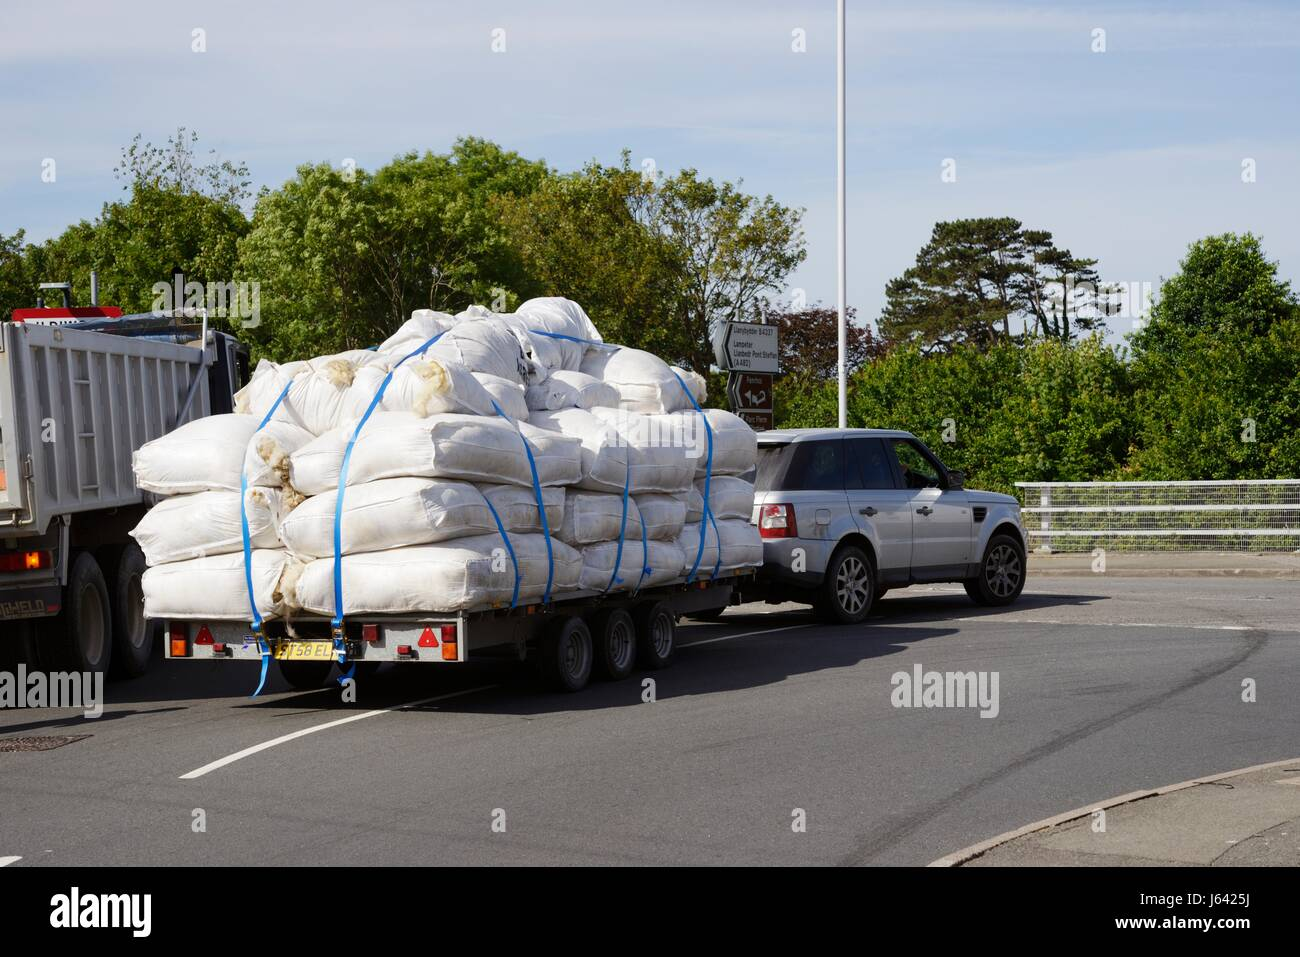 Sacks of sheep's wool, fleeces, being transported by road, Wales, UK - Stock Image